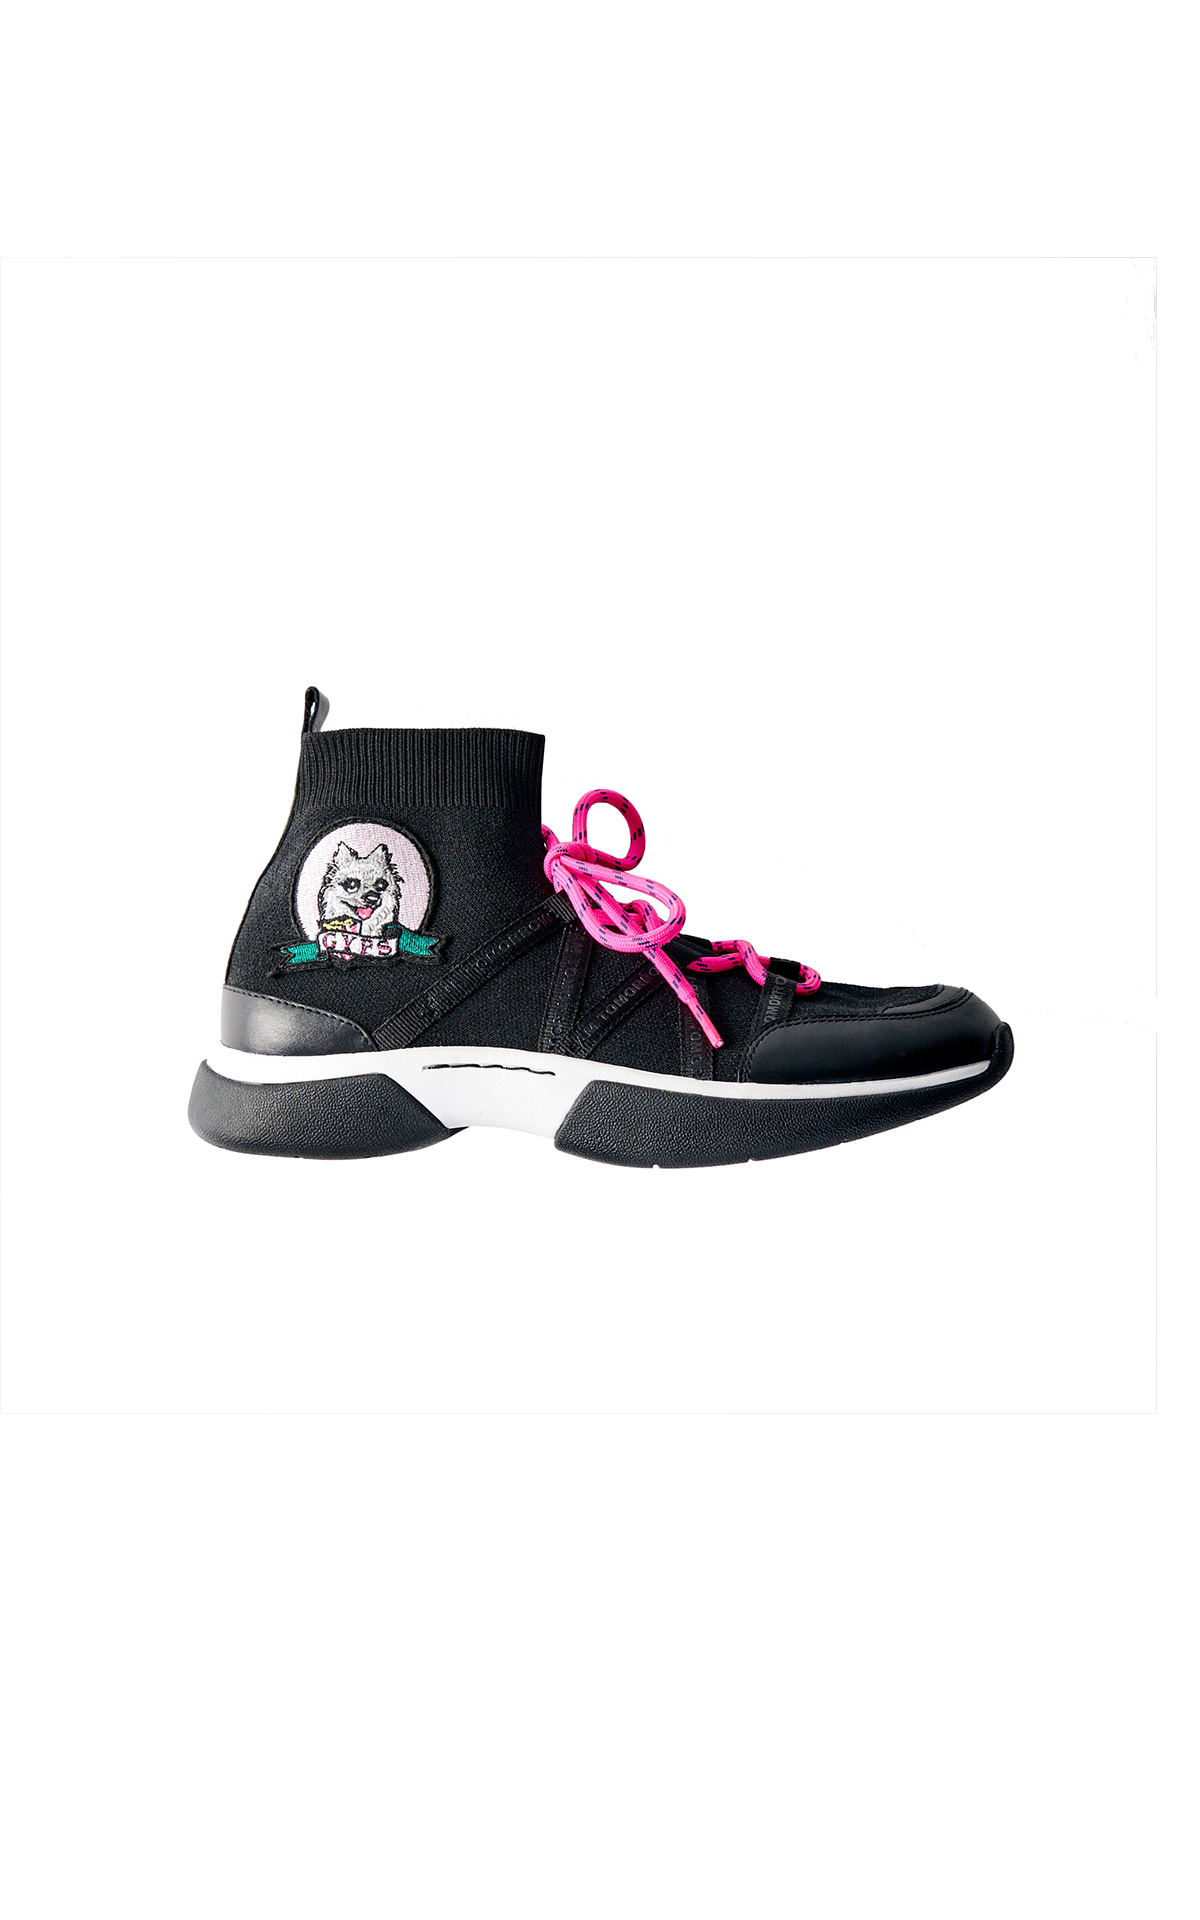 Maje Gyps W21 high-top sneakers in Stretch mesh at The Bicester Village Shopping Collection